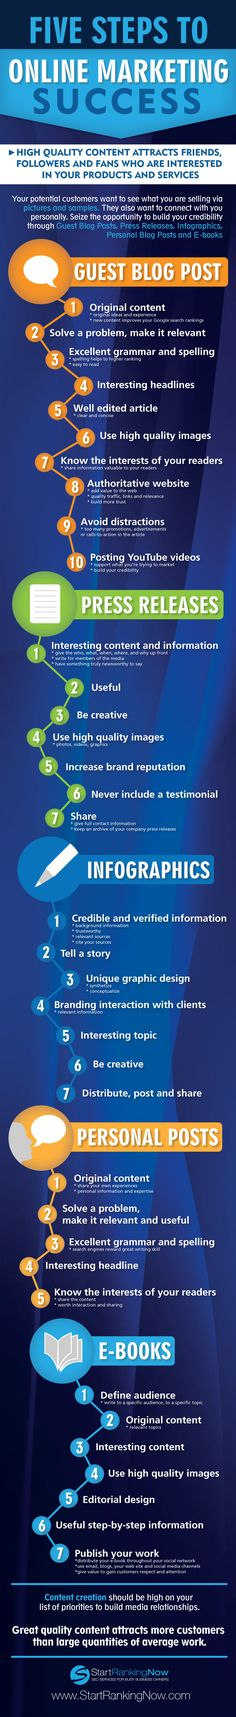 5 steps to online marketing success [infographic]. Visit CRM Digital Marketing @ http://crmdigitalmarketing.com to receive a free online marketing consult.